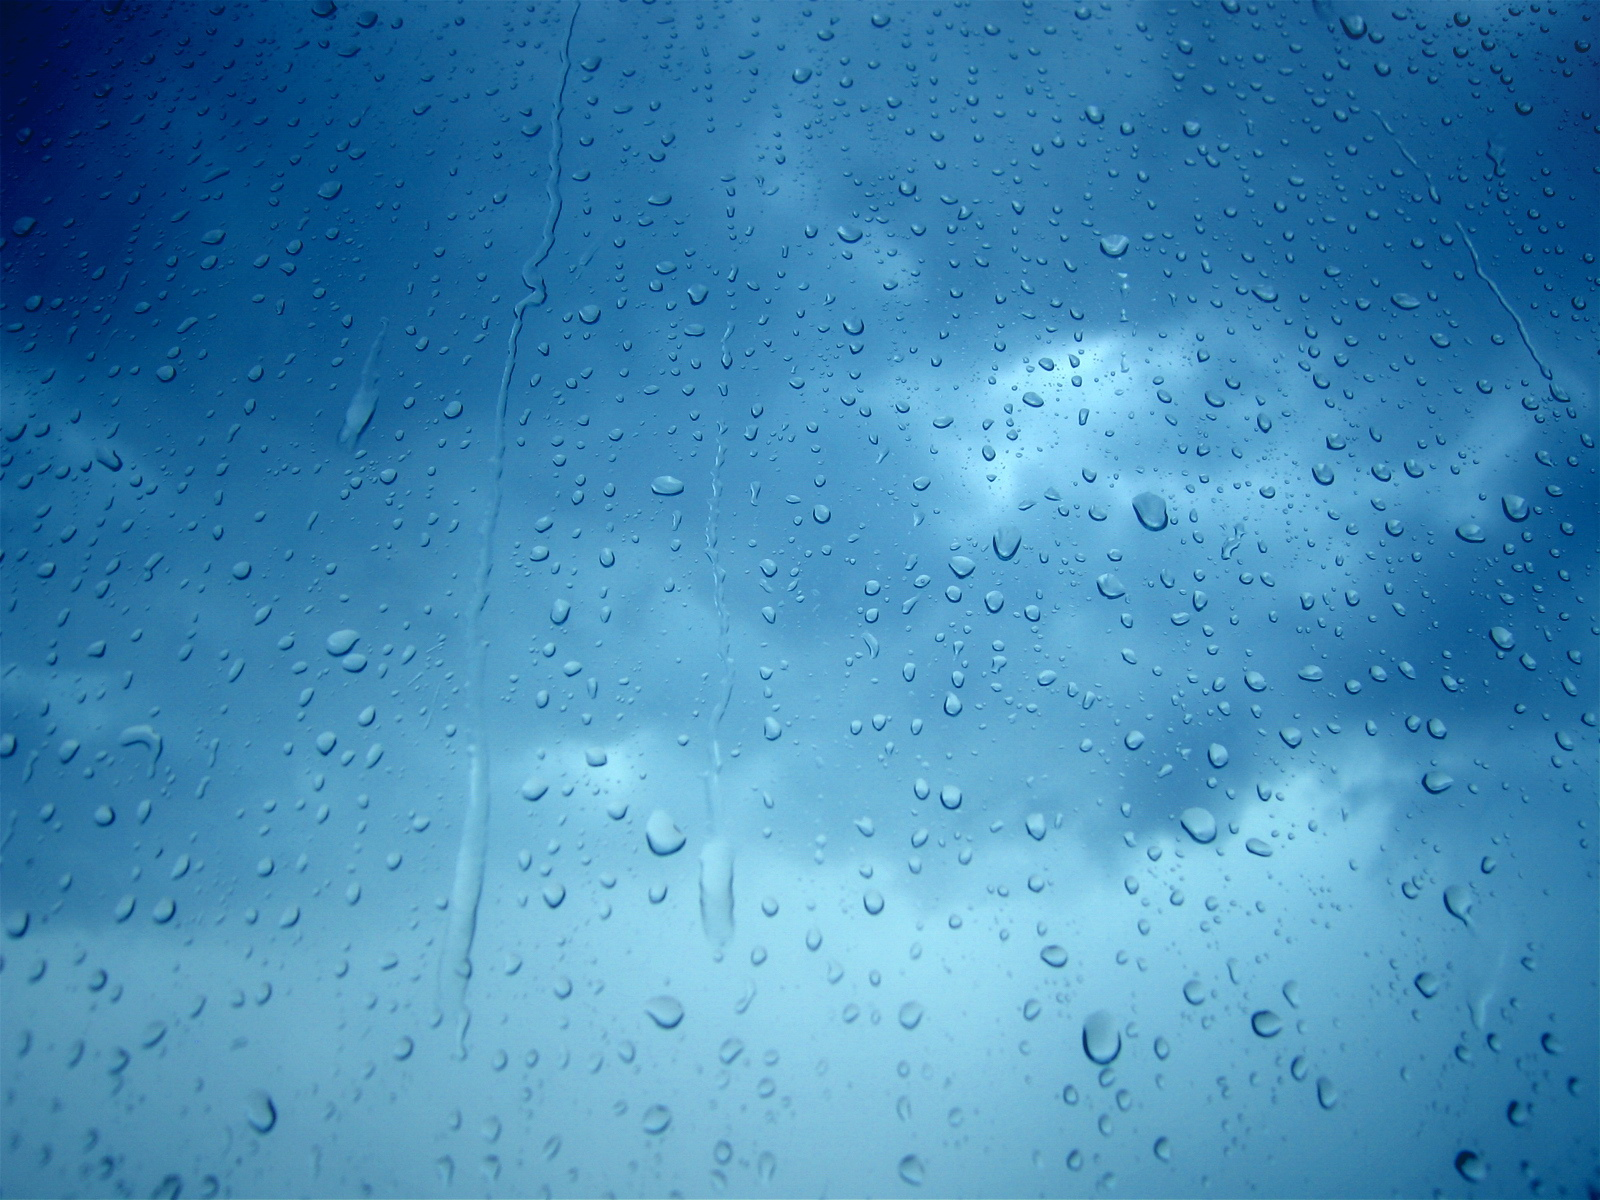 Rainy Day High Definition Desktop Wallpapers 1280 and 1600 1600x1200